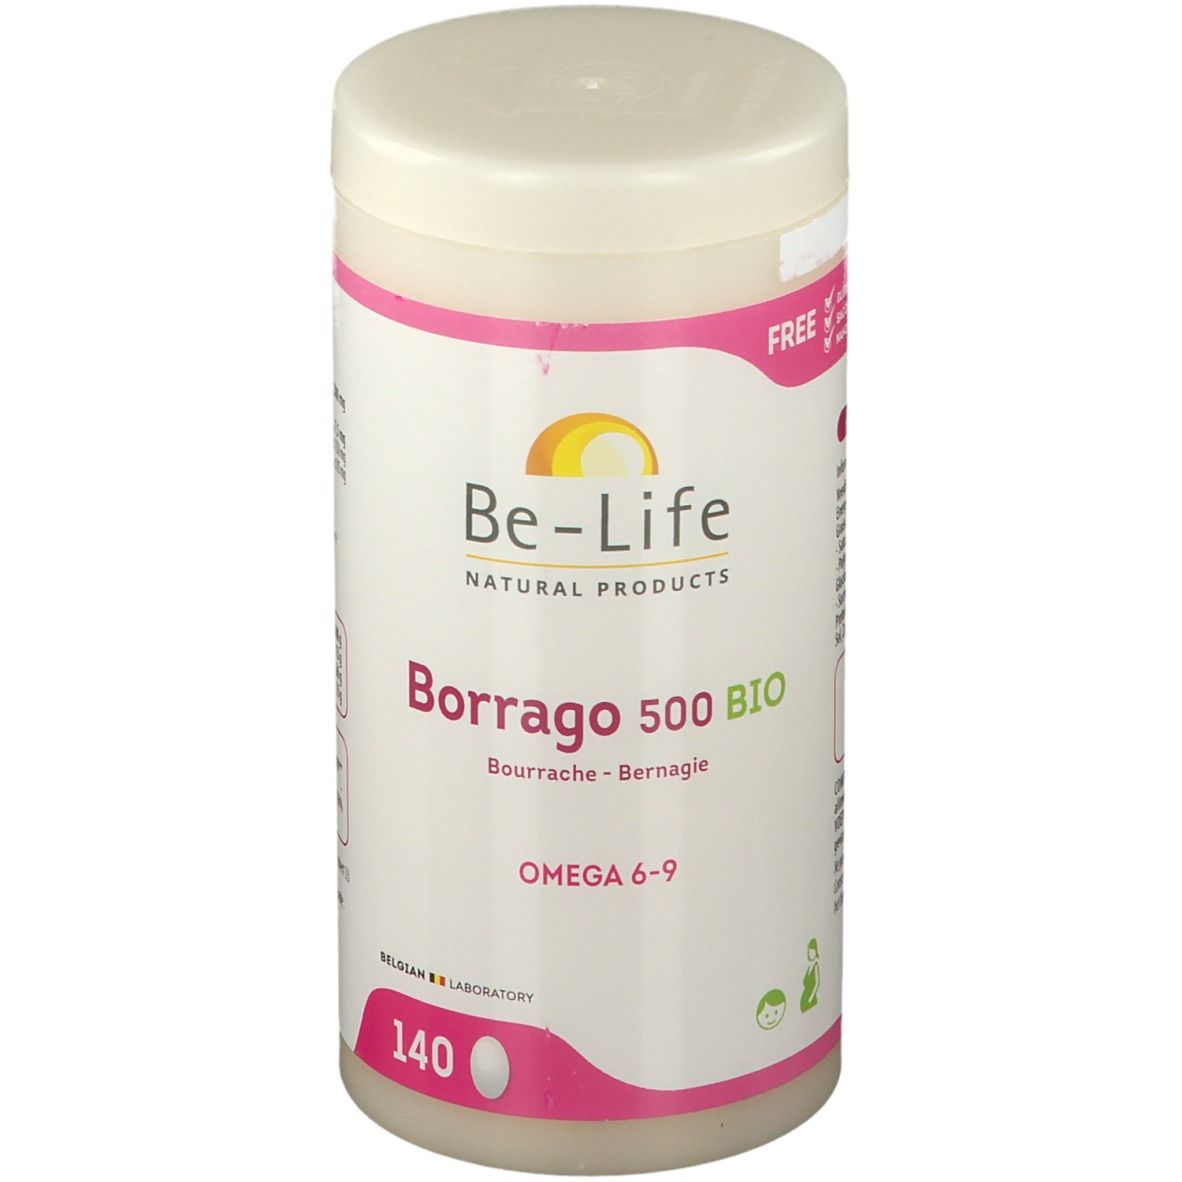 Image of Be-Life Borrago 500